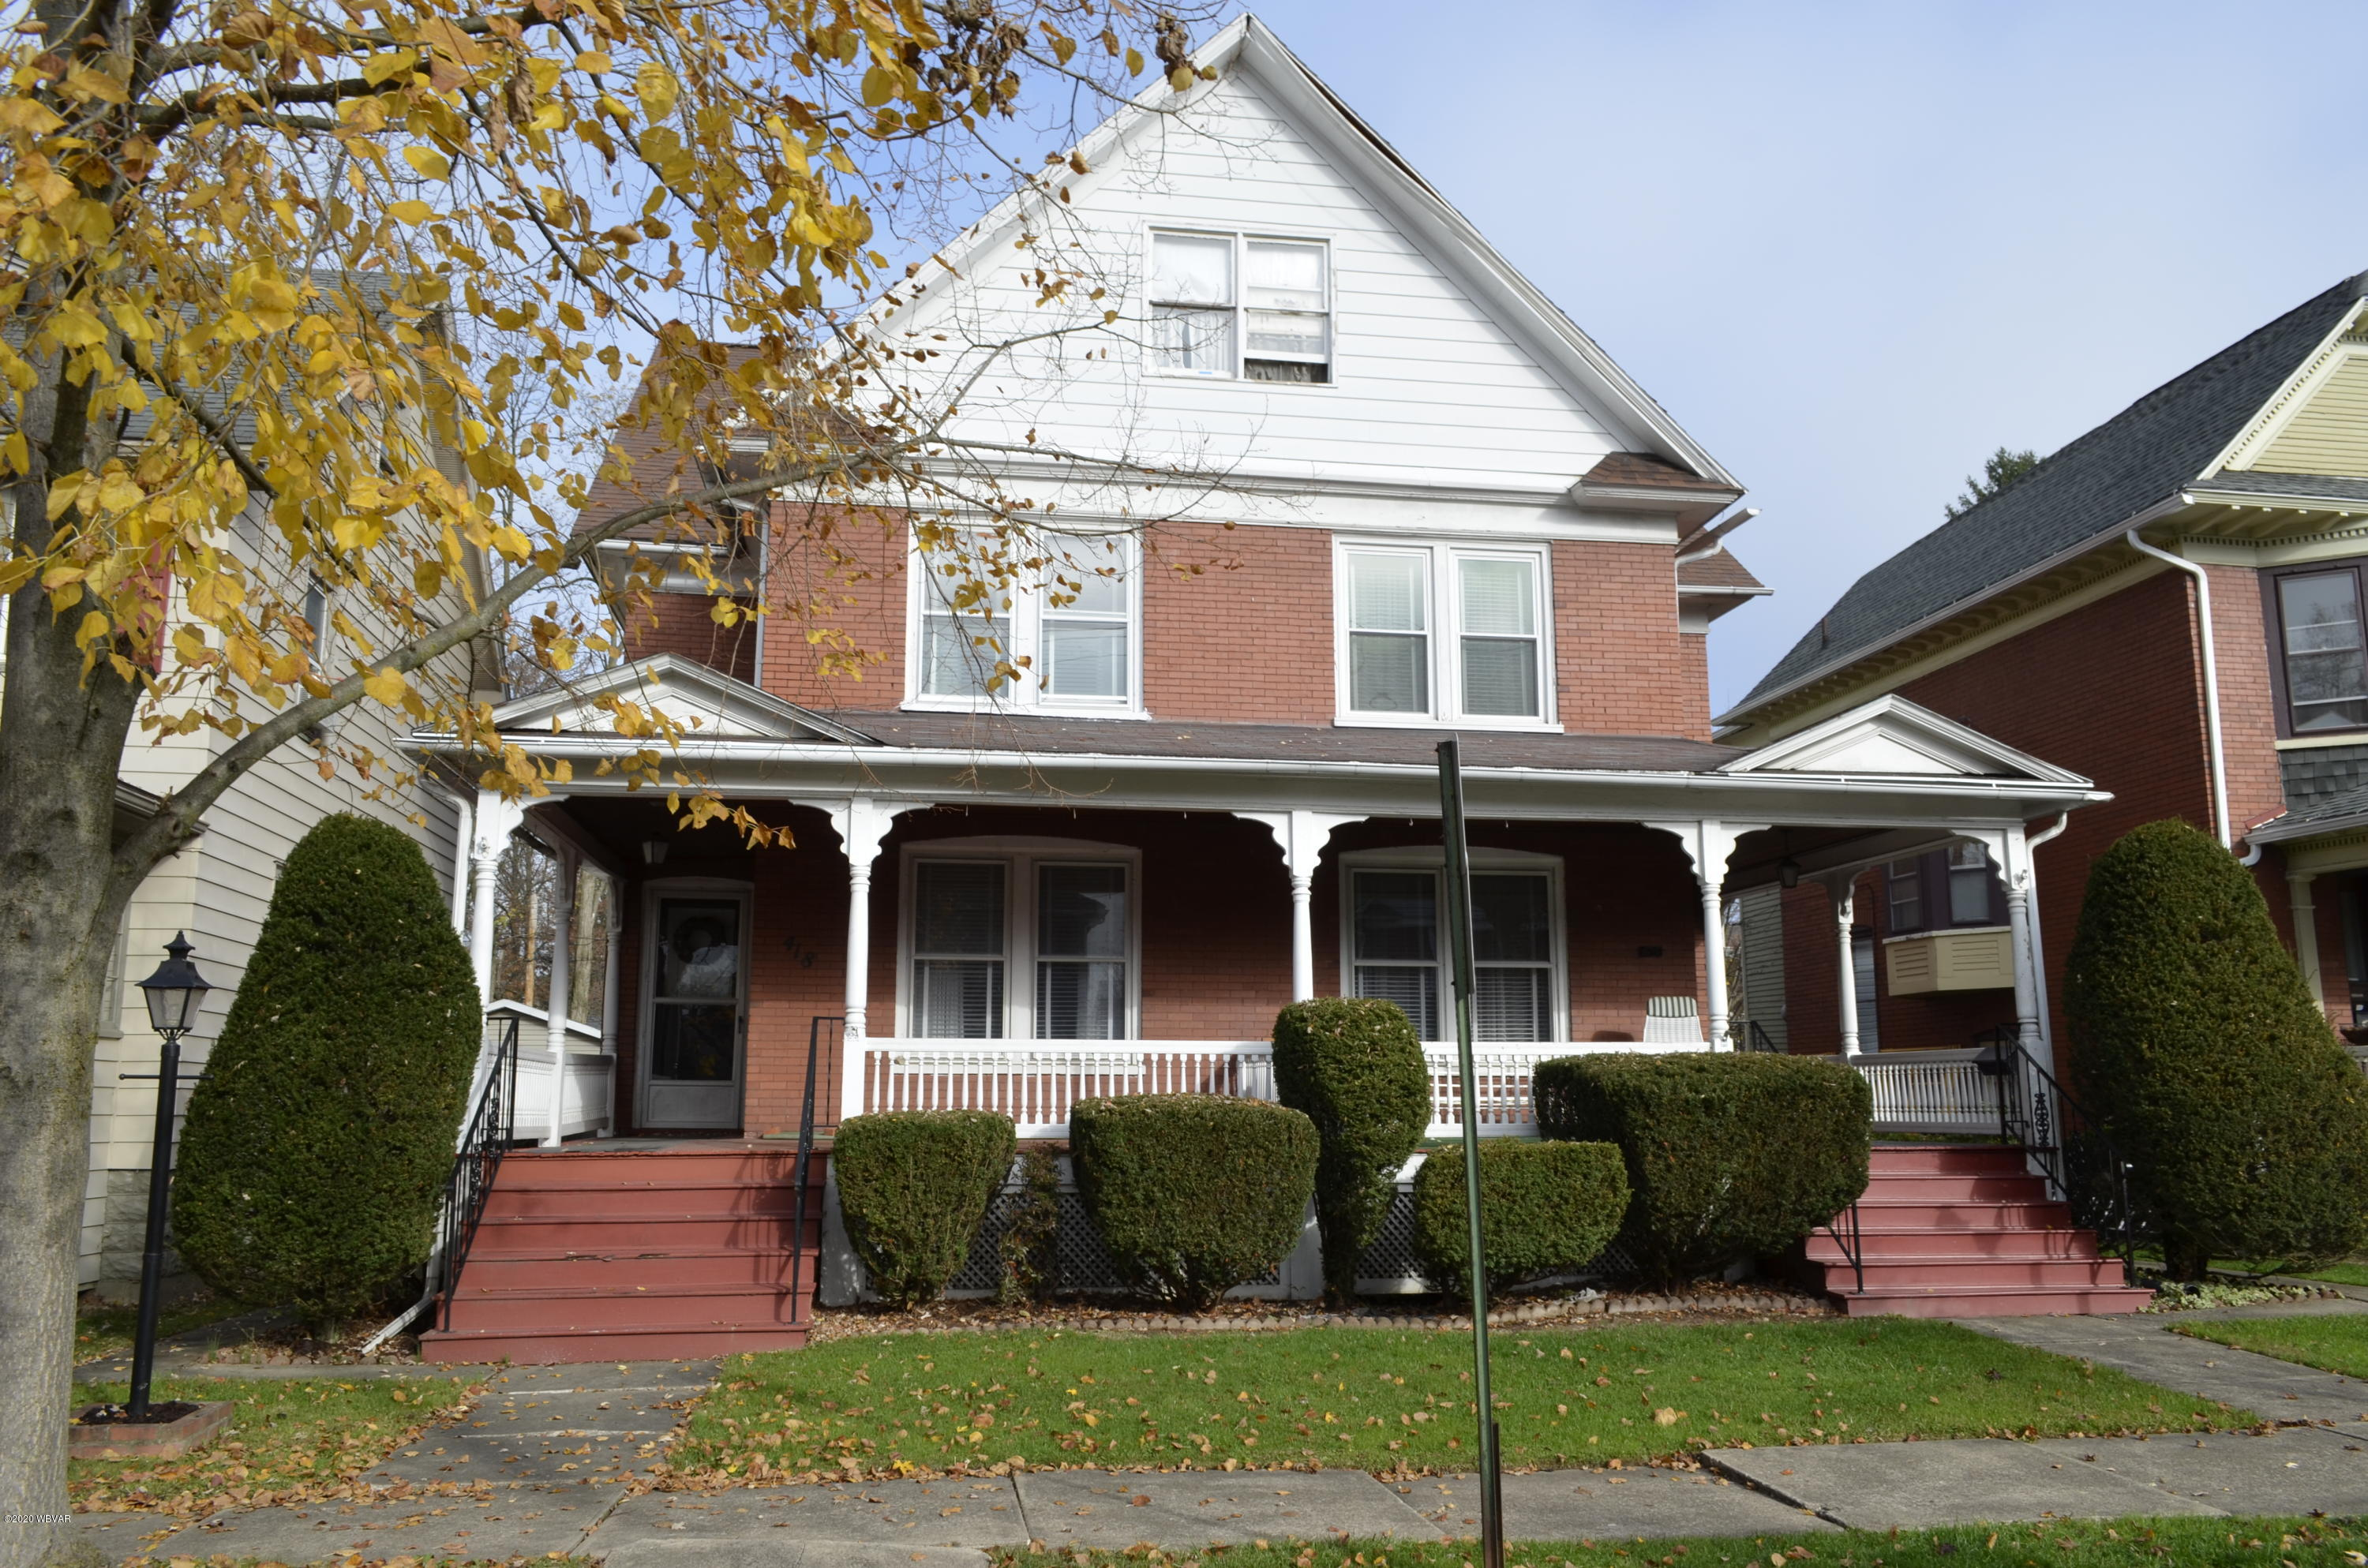 418 HAWTHORNE AVENUE, Williamsport, PA 17701, 3 Bedrooms Bedrooms, ,1 BathroomBathrooms,Residential,For sale,HAWTHORNE,WB-91538